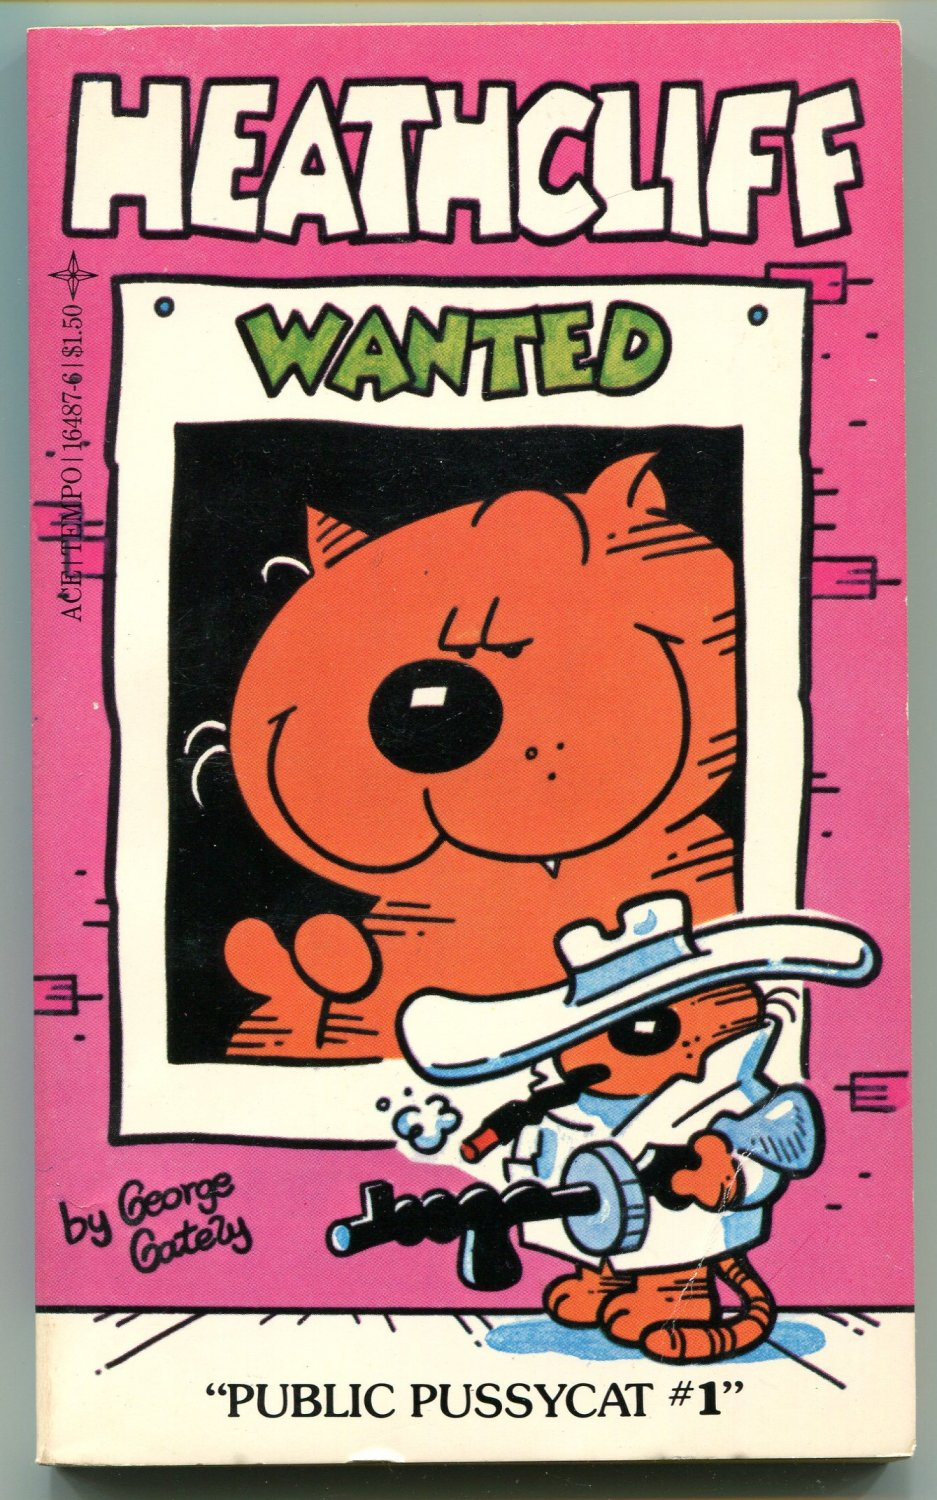 Heathcliff PUBLIC PUSSY CAT #1 George Gately First Printing